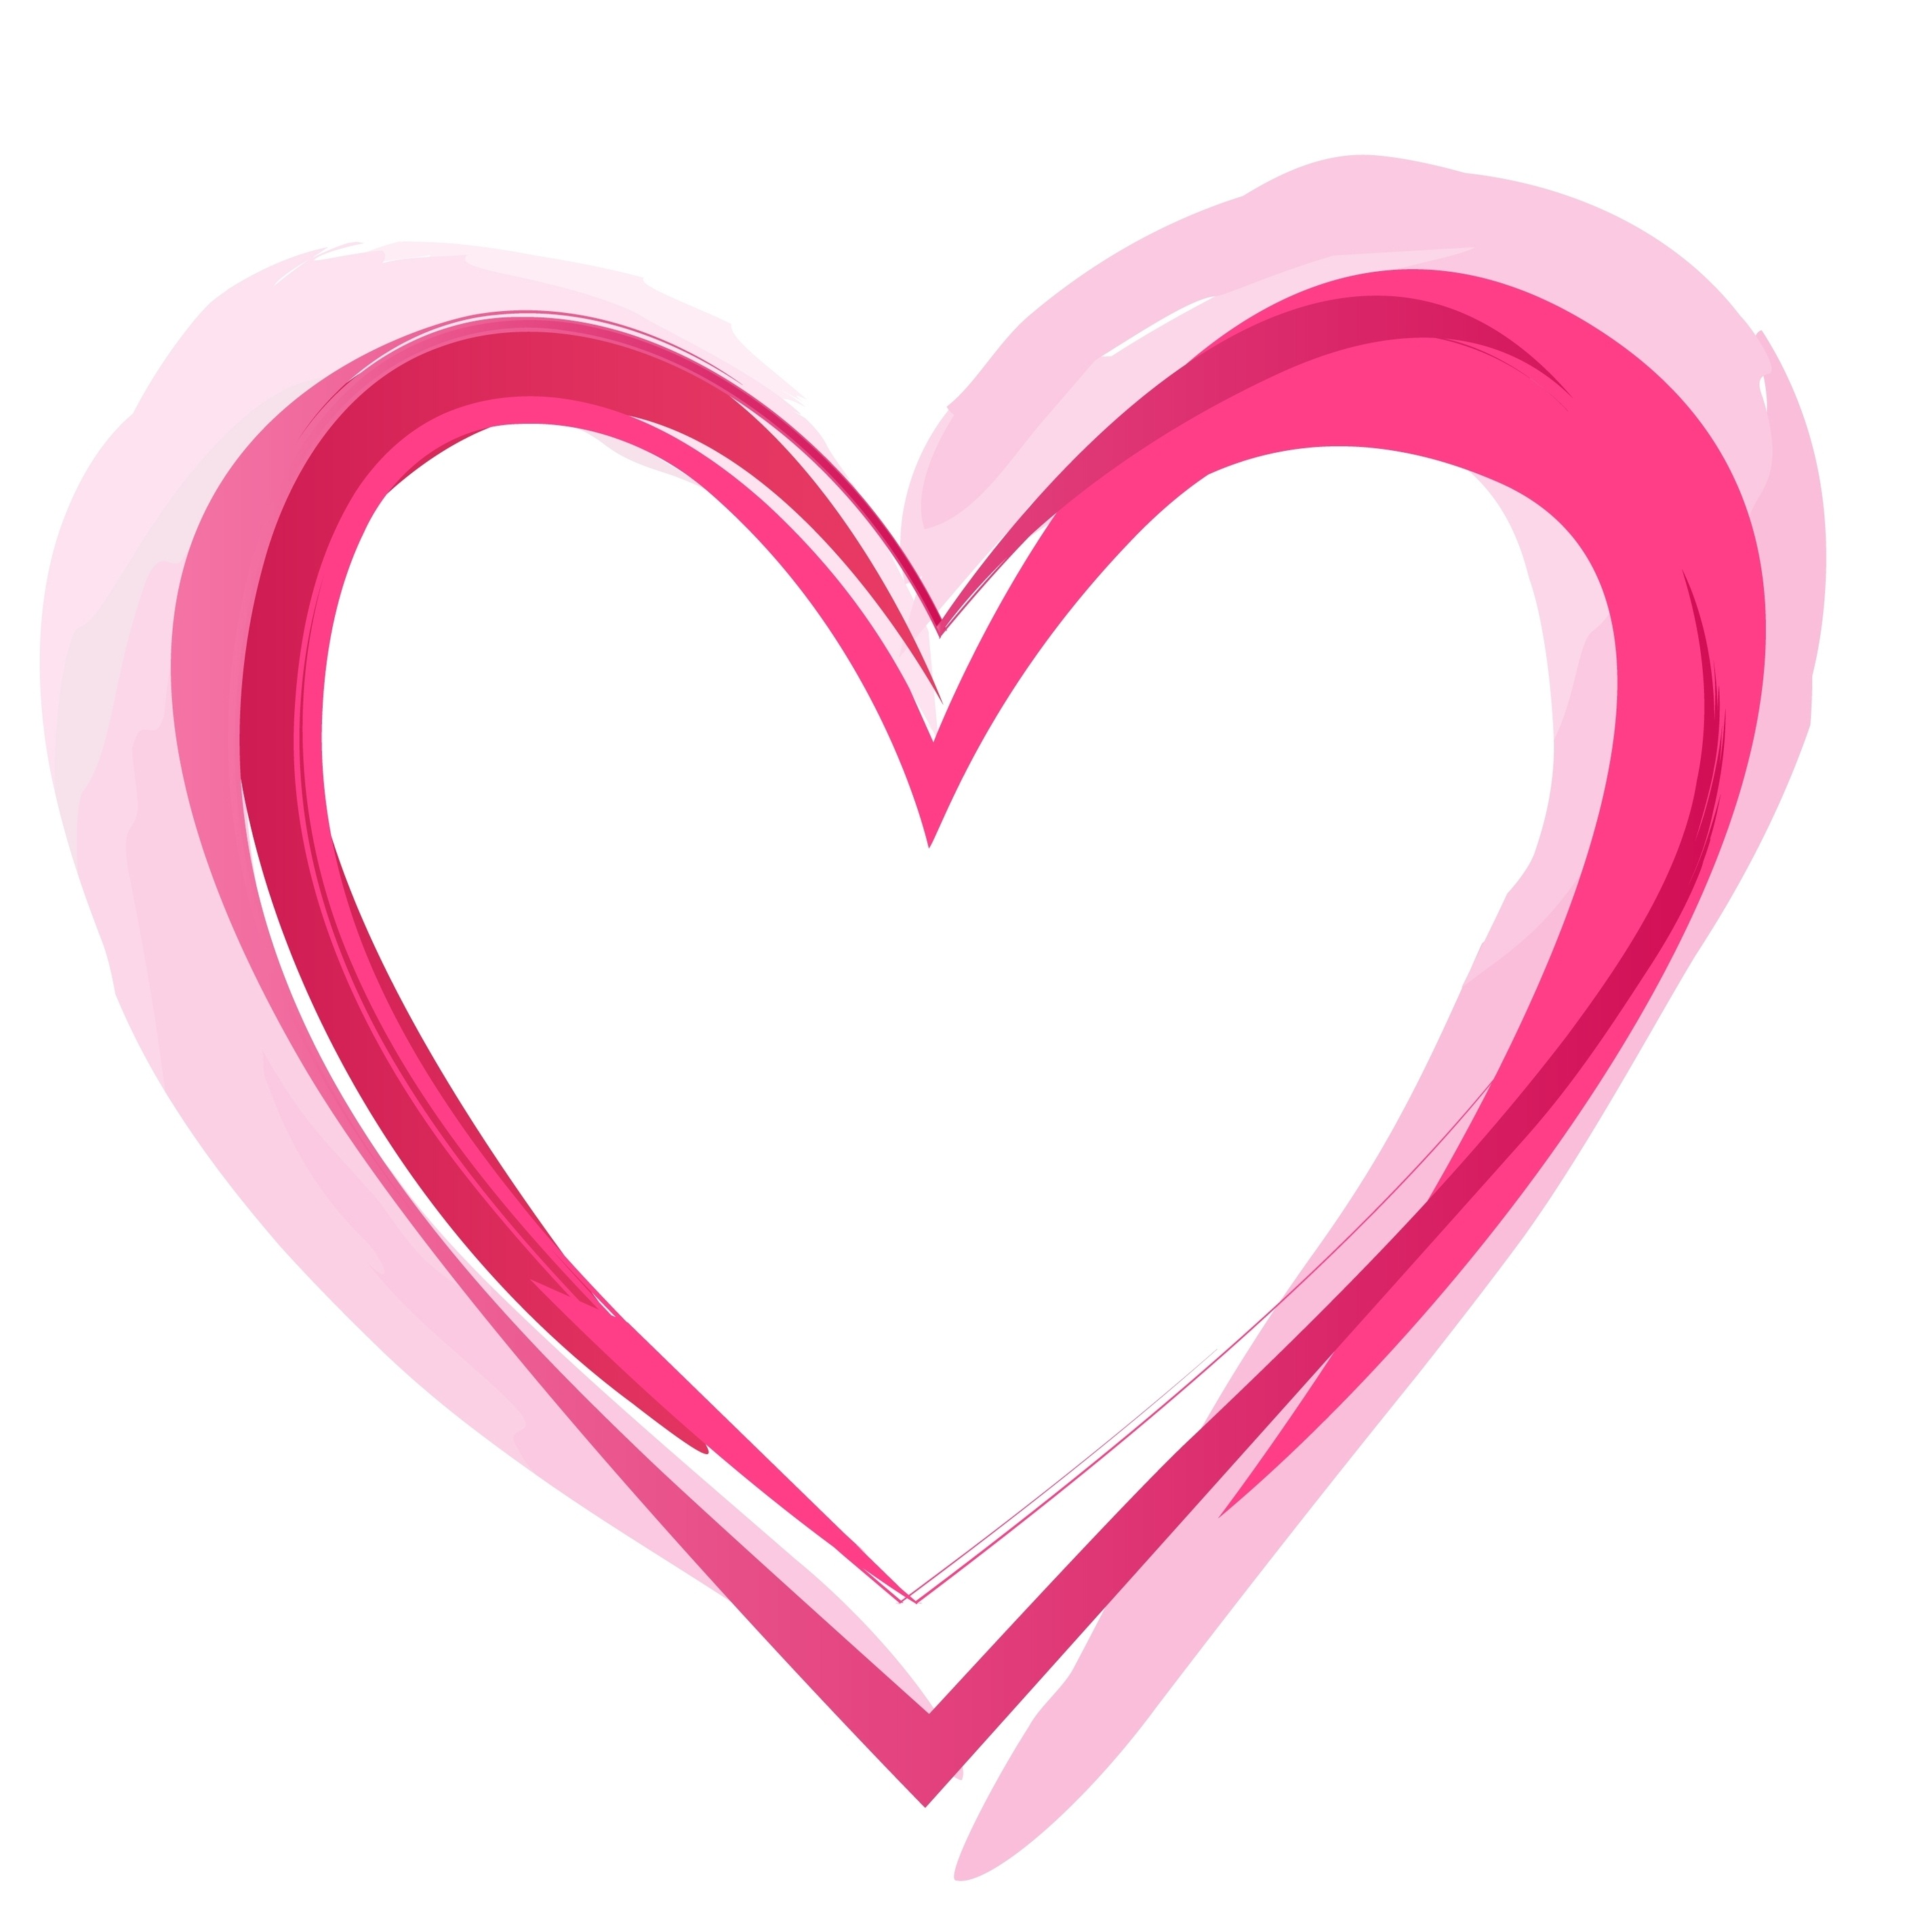 Pink Heart Outline | Free download on ClipArtMag